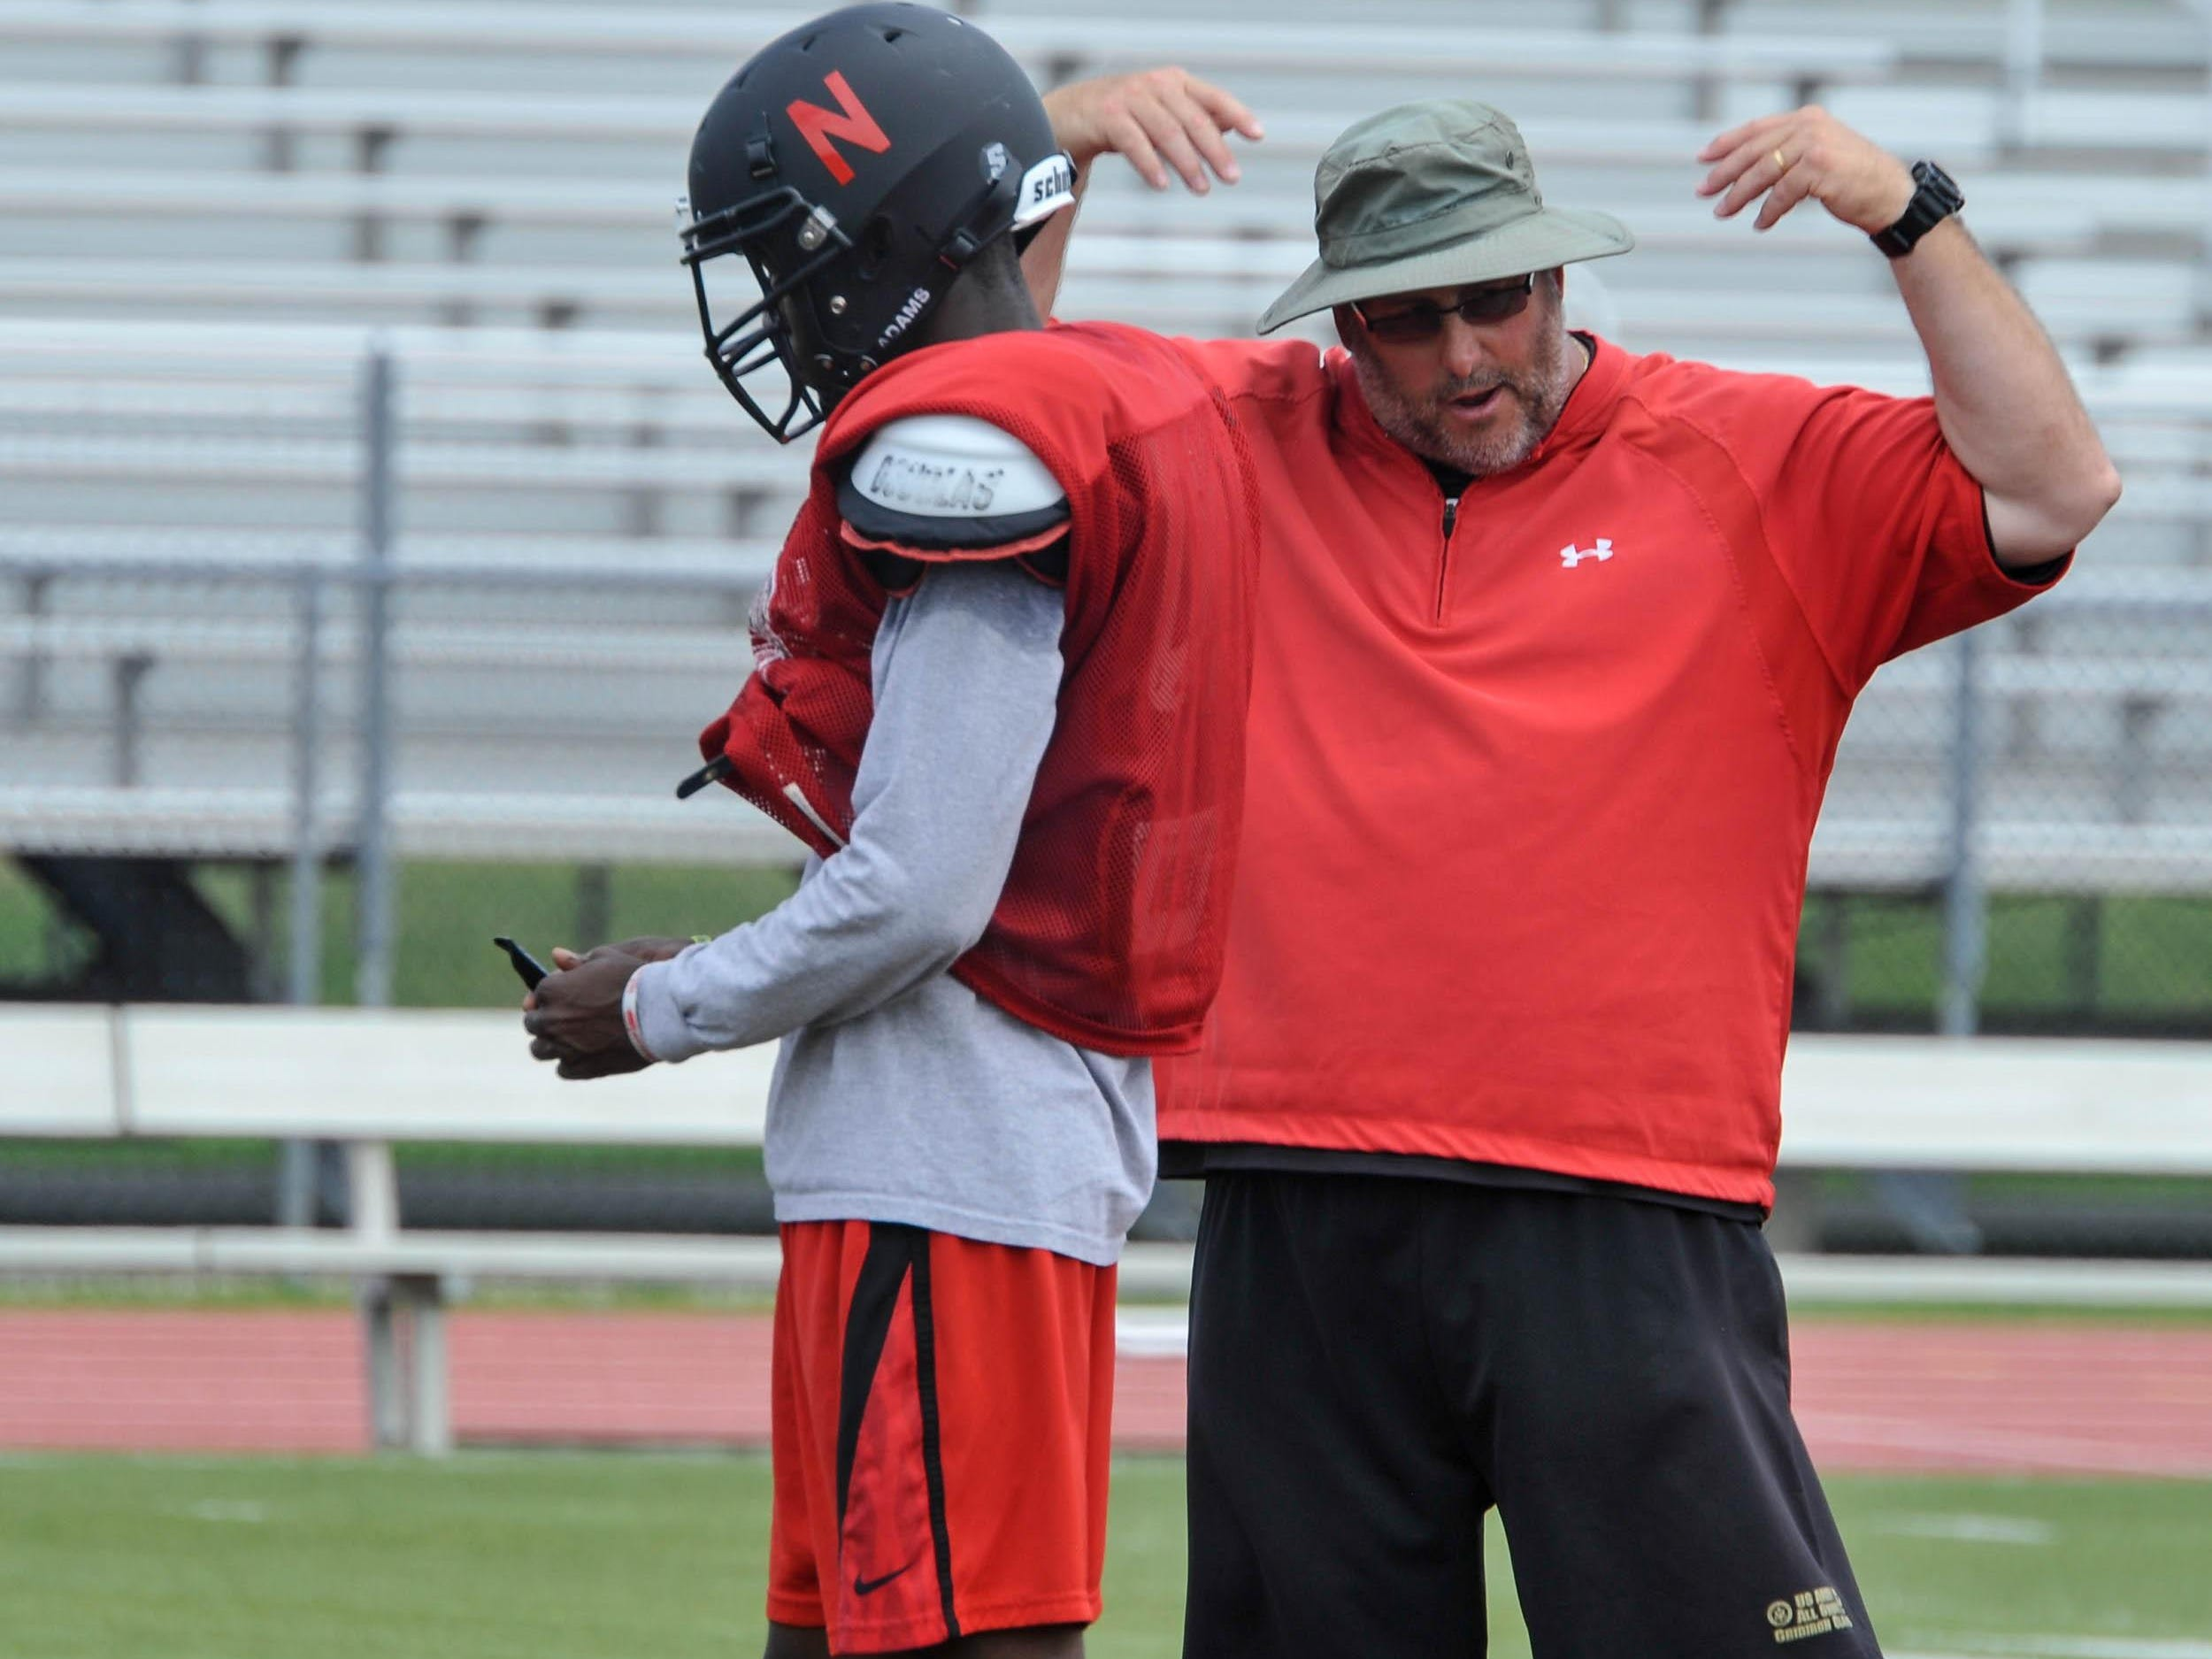 Mark Ciccotelli, shown coaching Neptune in 2013, is apparently out as head football coach at St. John Vianney, according to an e-mail obtained by the Asbury Park Press Saturday